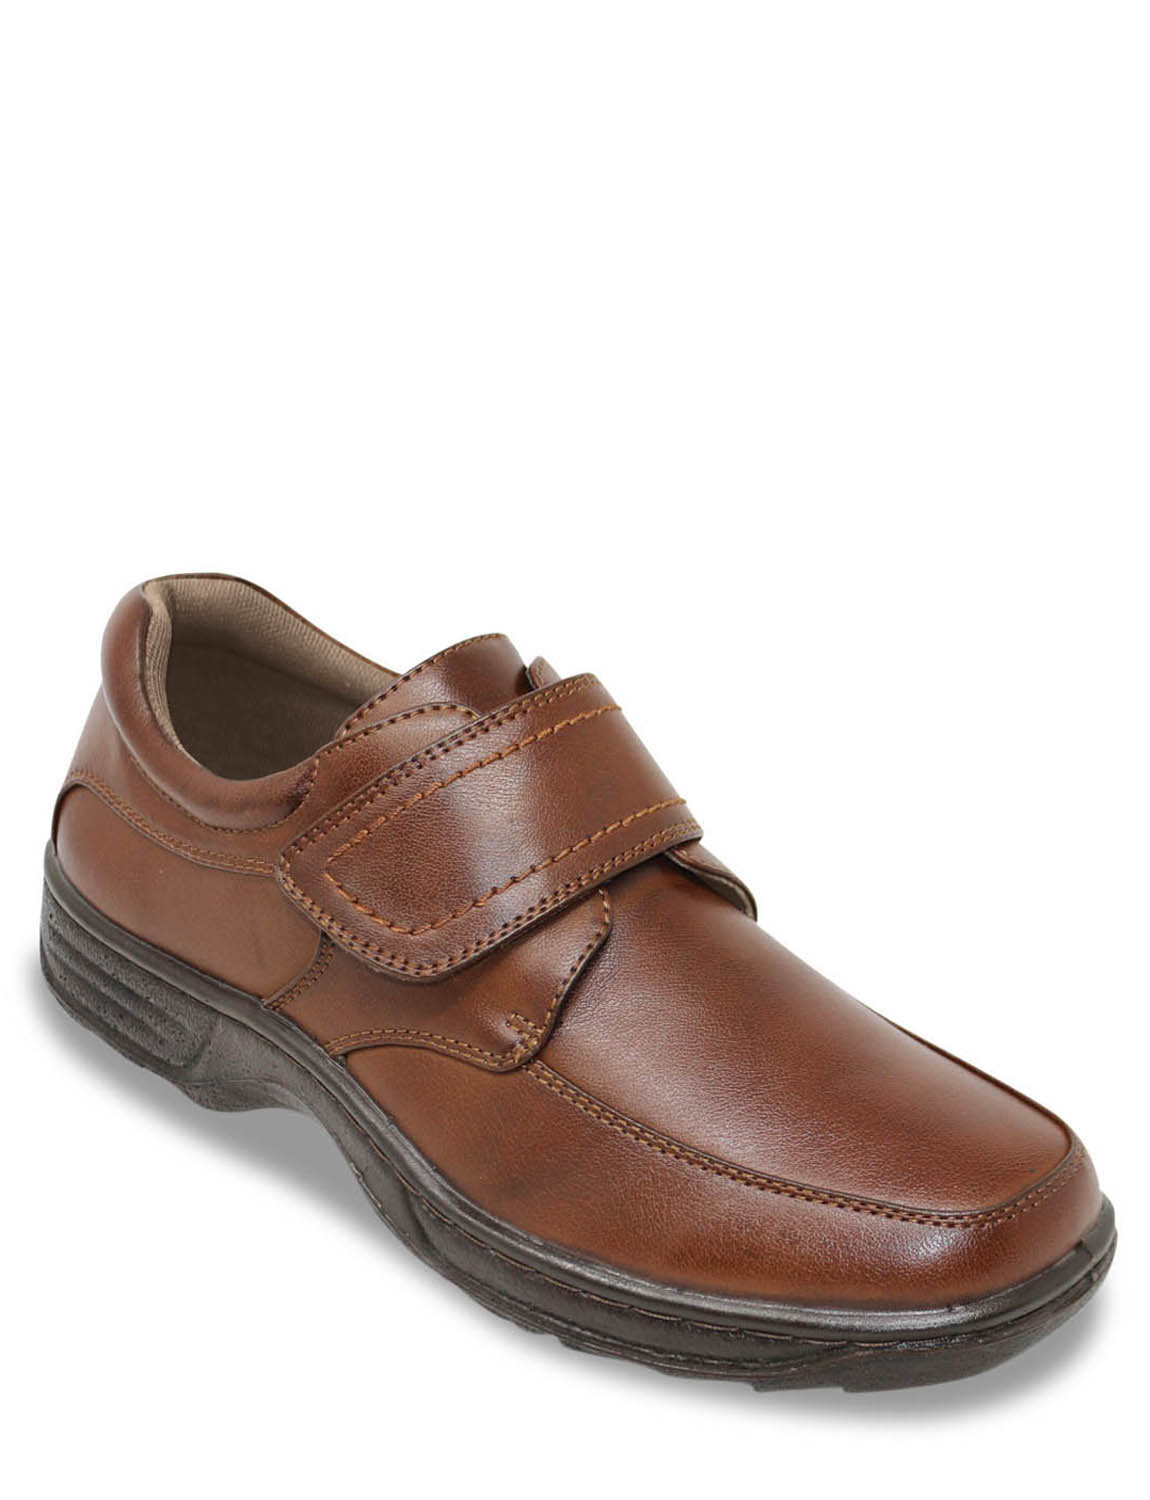 Mens Shoes Single Touch Fastening